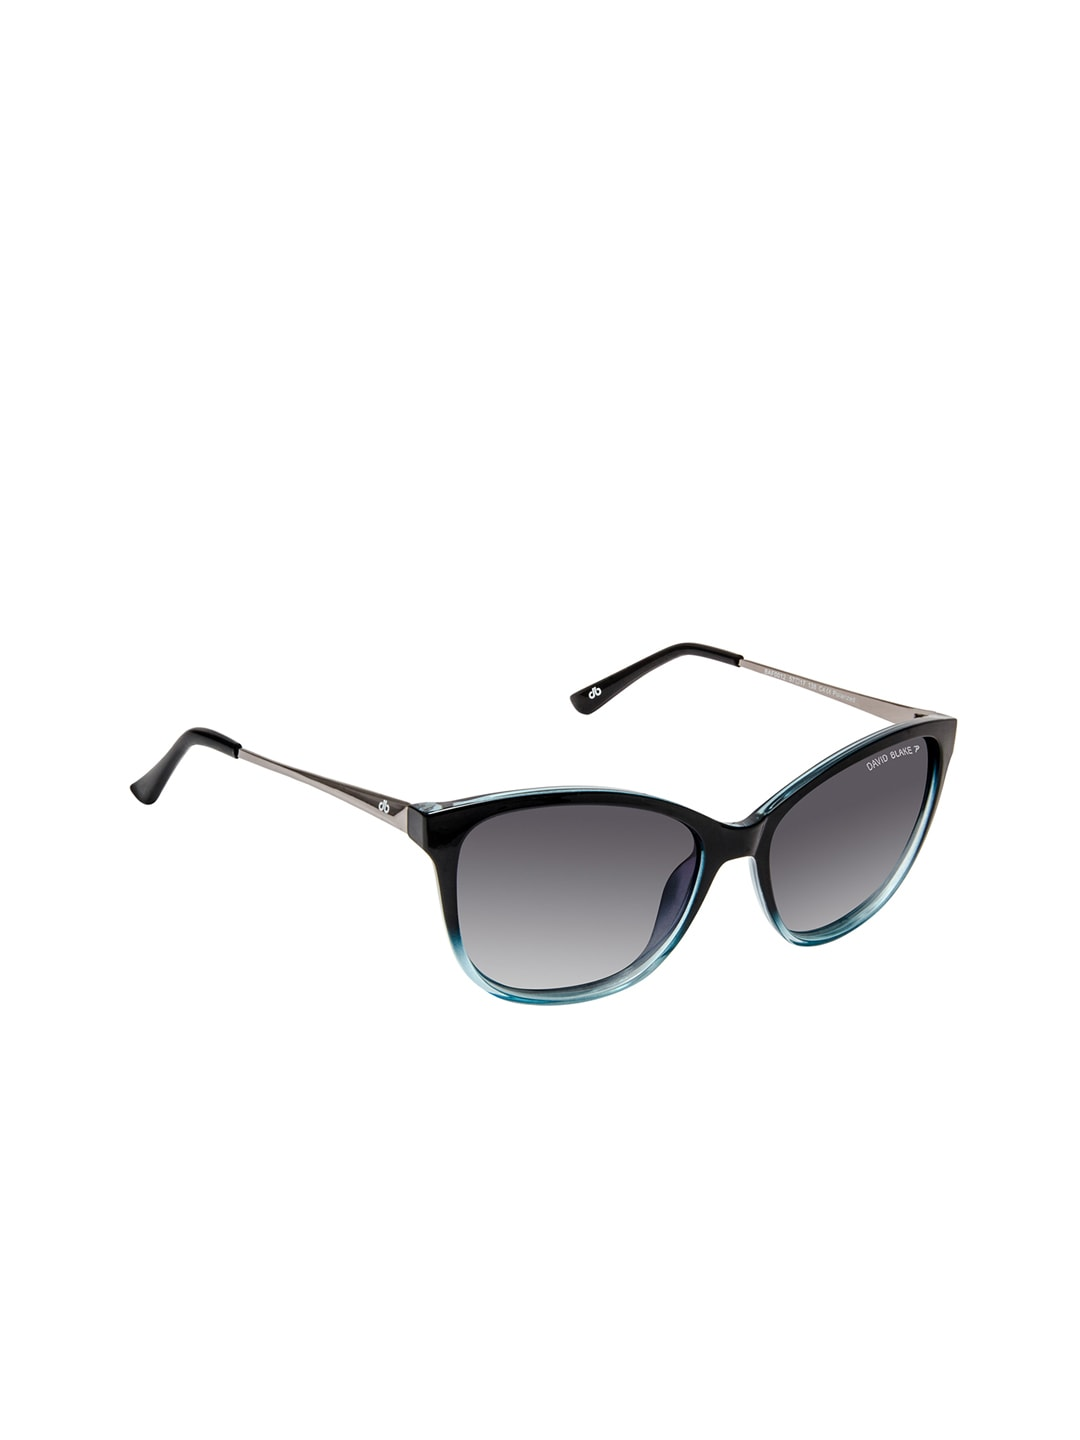 02fb898f4c Sunglasses For Women - Buy Womens Sunglasses Online